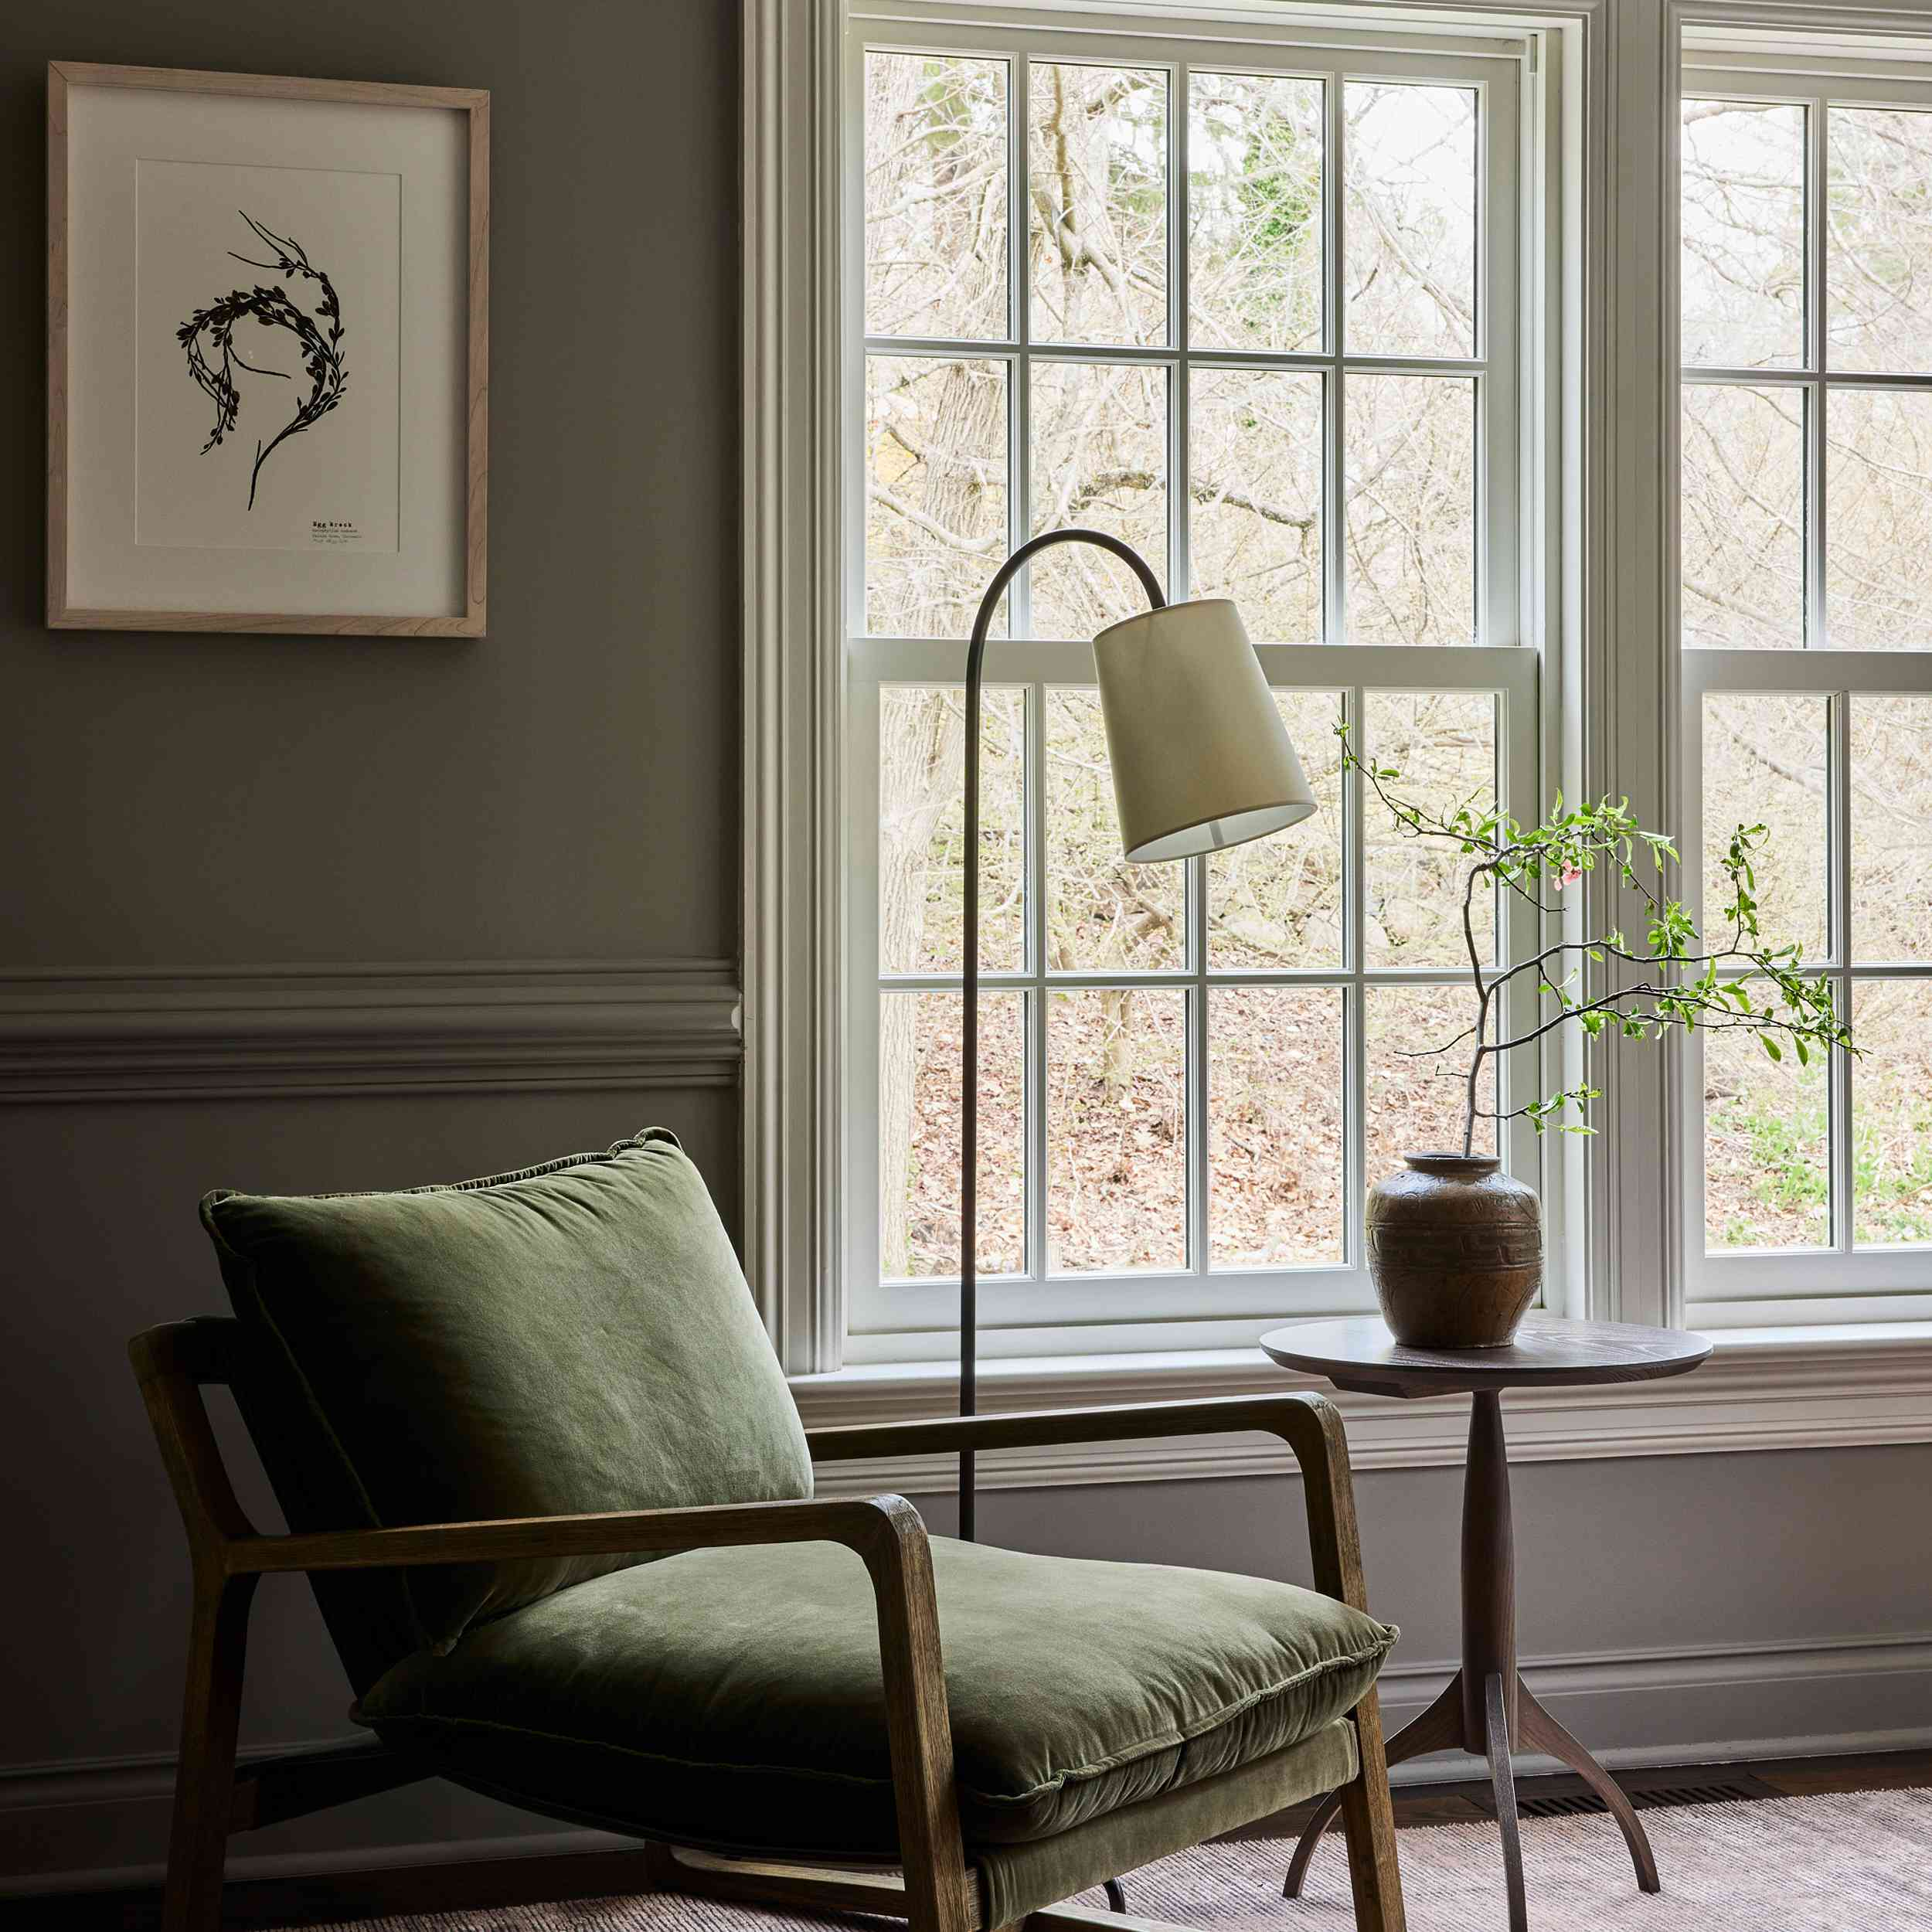 connecticut farmhouse home tour - her office with green chair and reading lamp